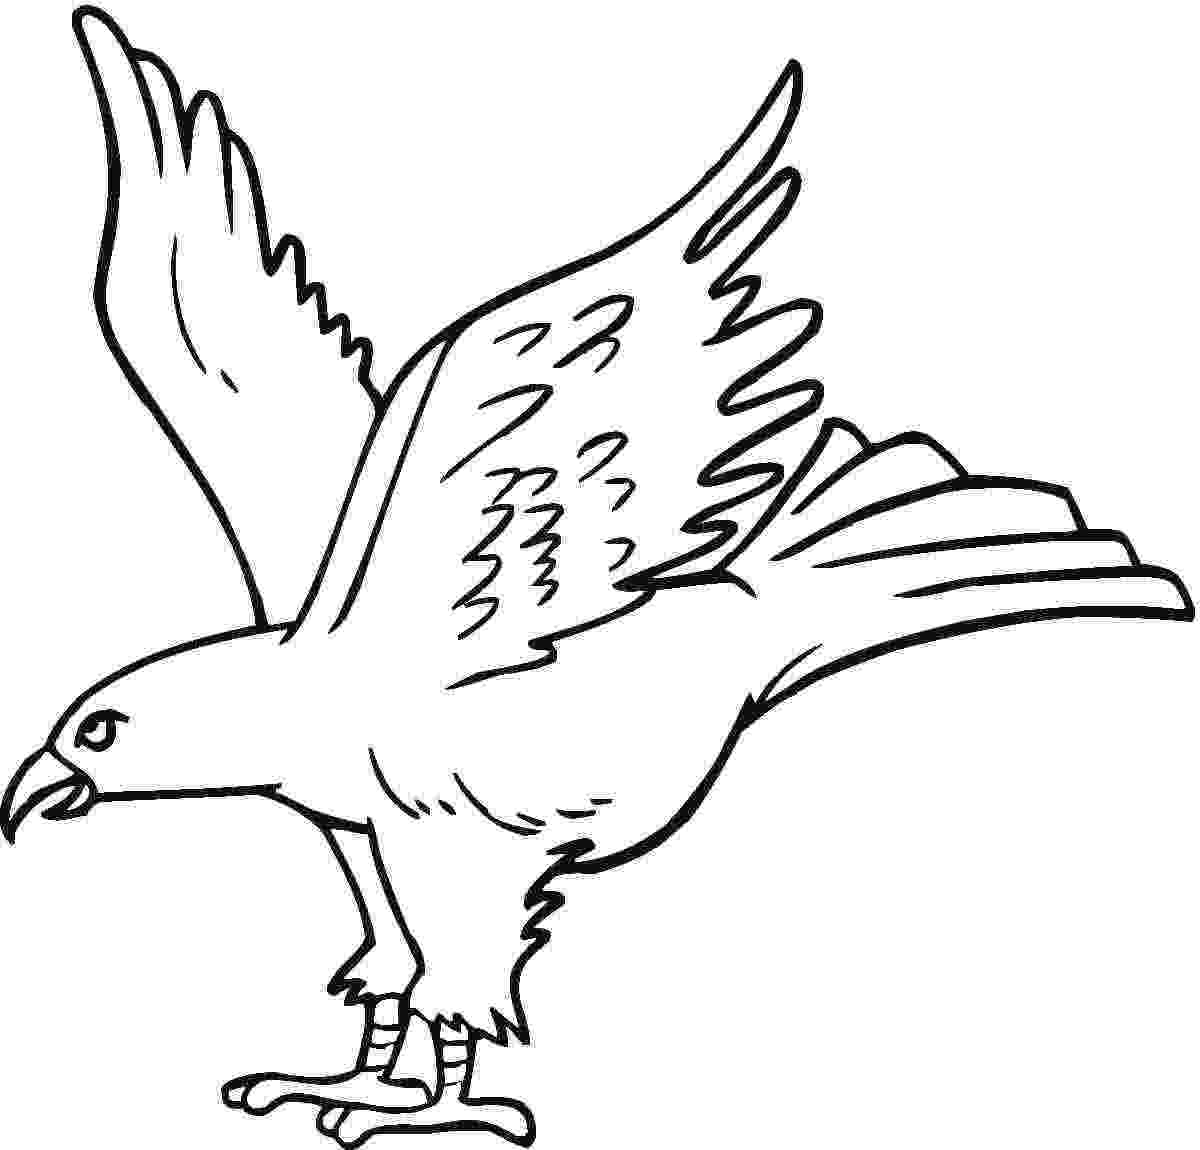 coloring eagle printable eagle coloring pages for kids cool2bkids eagle coloring